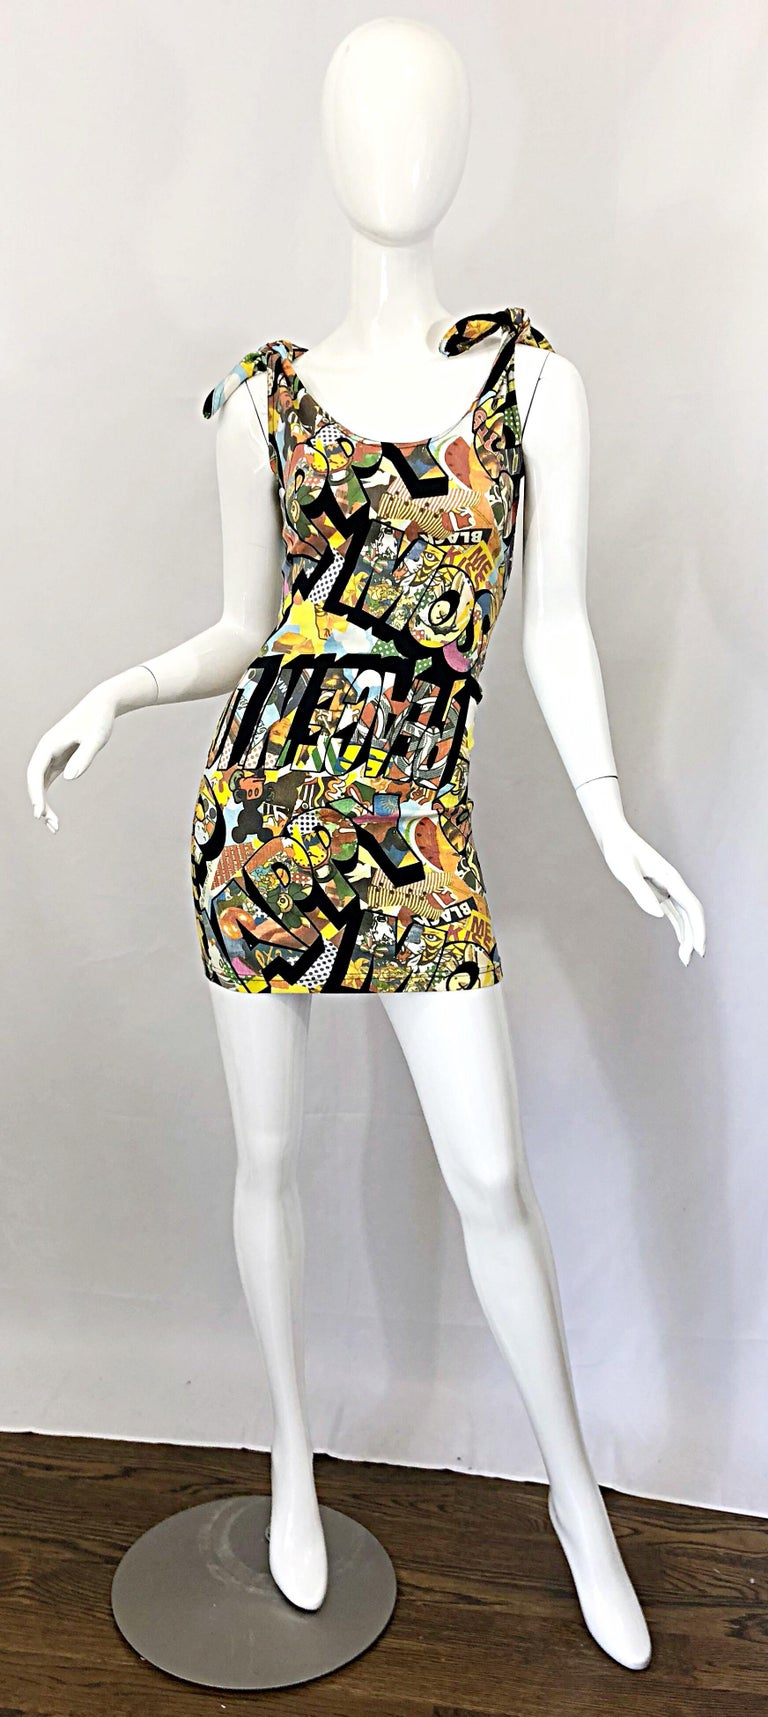 Rare and iconic 1990s MOSCHINO novelty print sexy mini dress! Features all of the cartoon characters Moschino used in the 90s. Mickey Mouse, Minnie Mouse, Popeye, Olive Oyl, amongst others. Hidden zipper up the side. Comfortable Cotton (98%) and